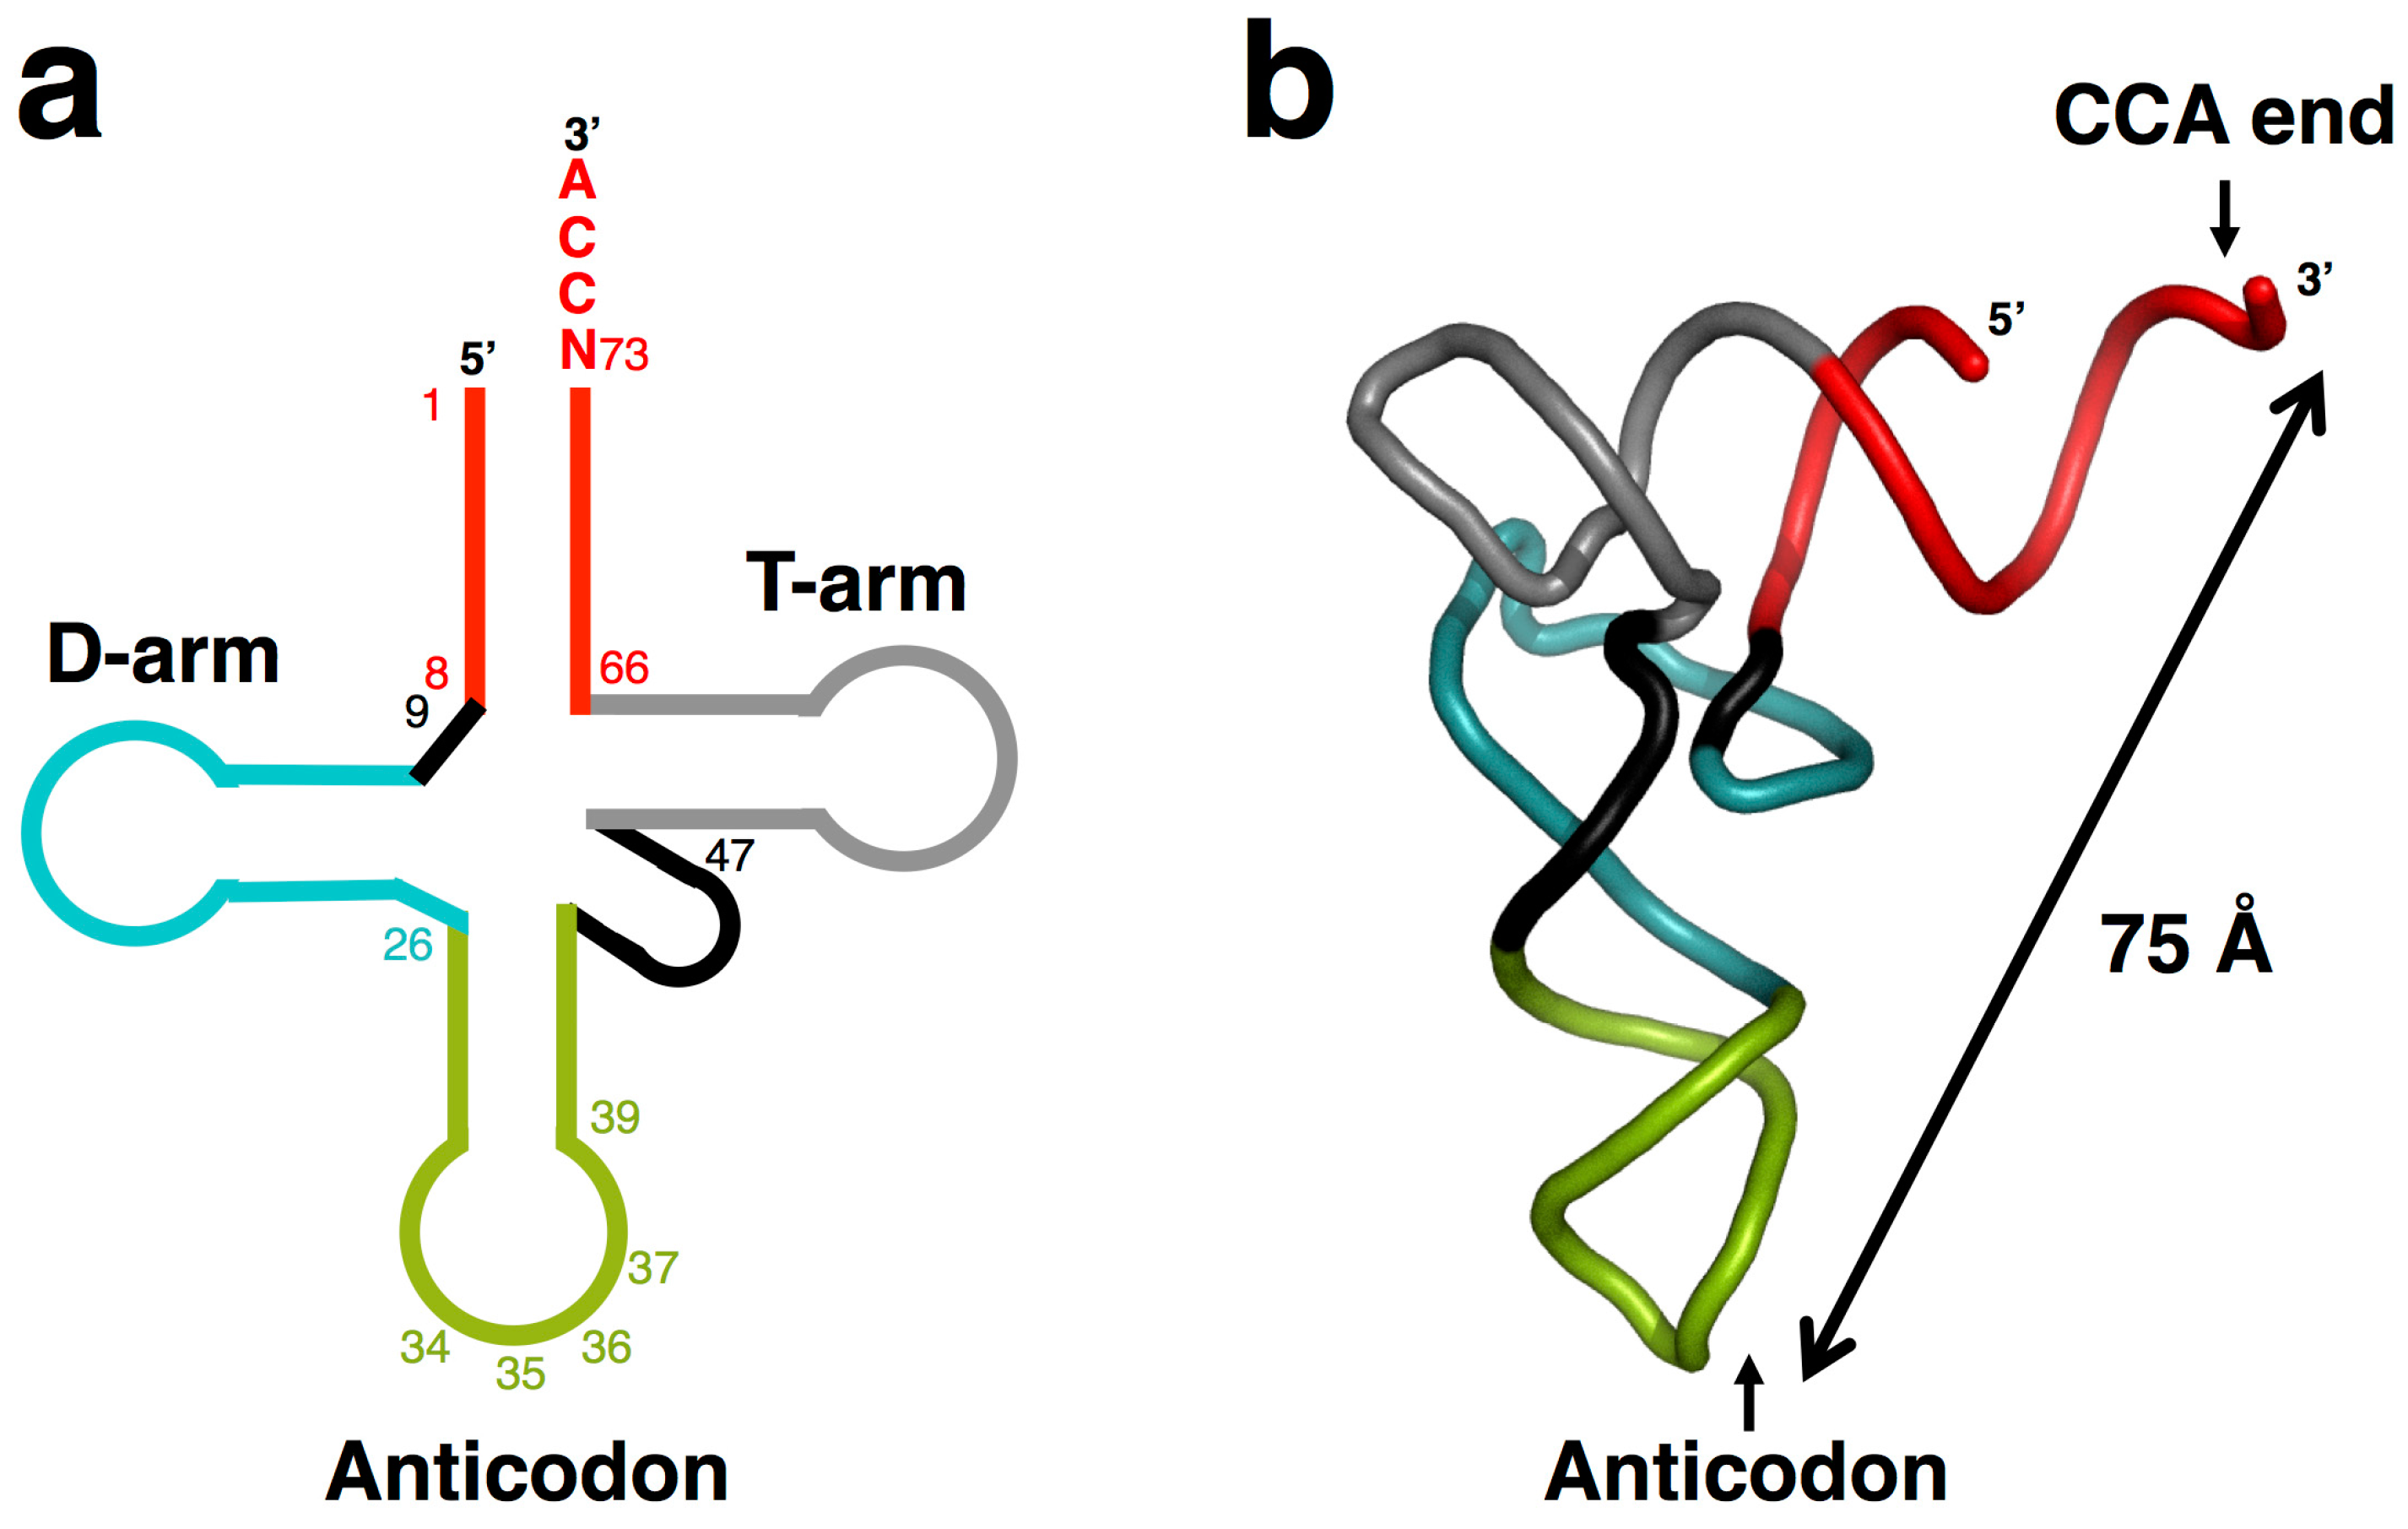 Origins and Early Evolution of the tRNA MoleculeAbstract Share & Cite This ArticleRelated ArticlesArticle MetricsArticle Access StatisticsCommentsCitations